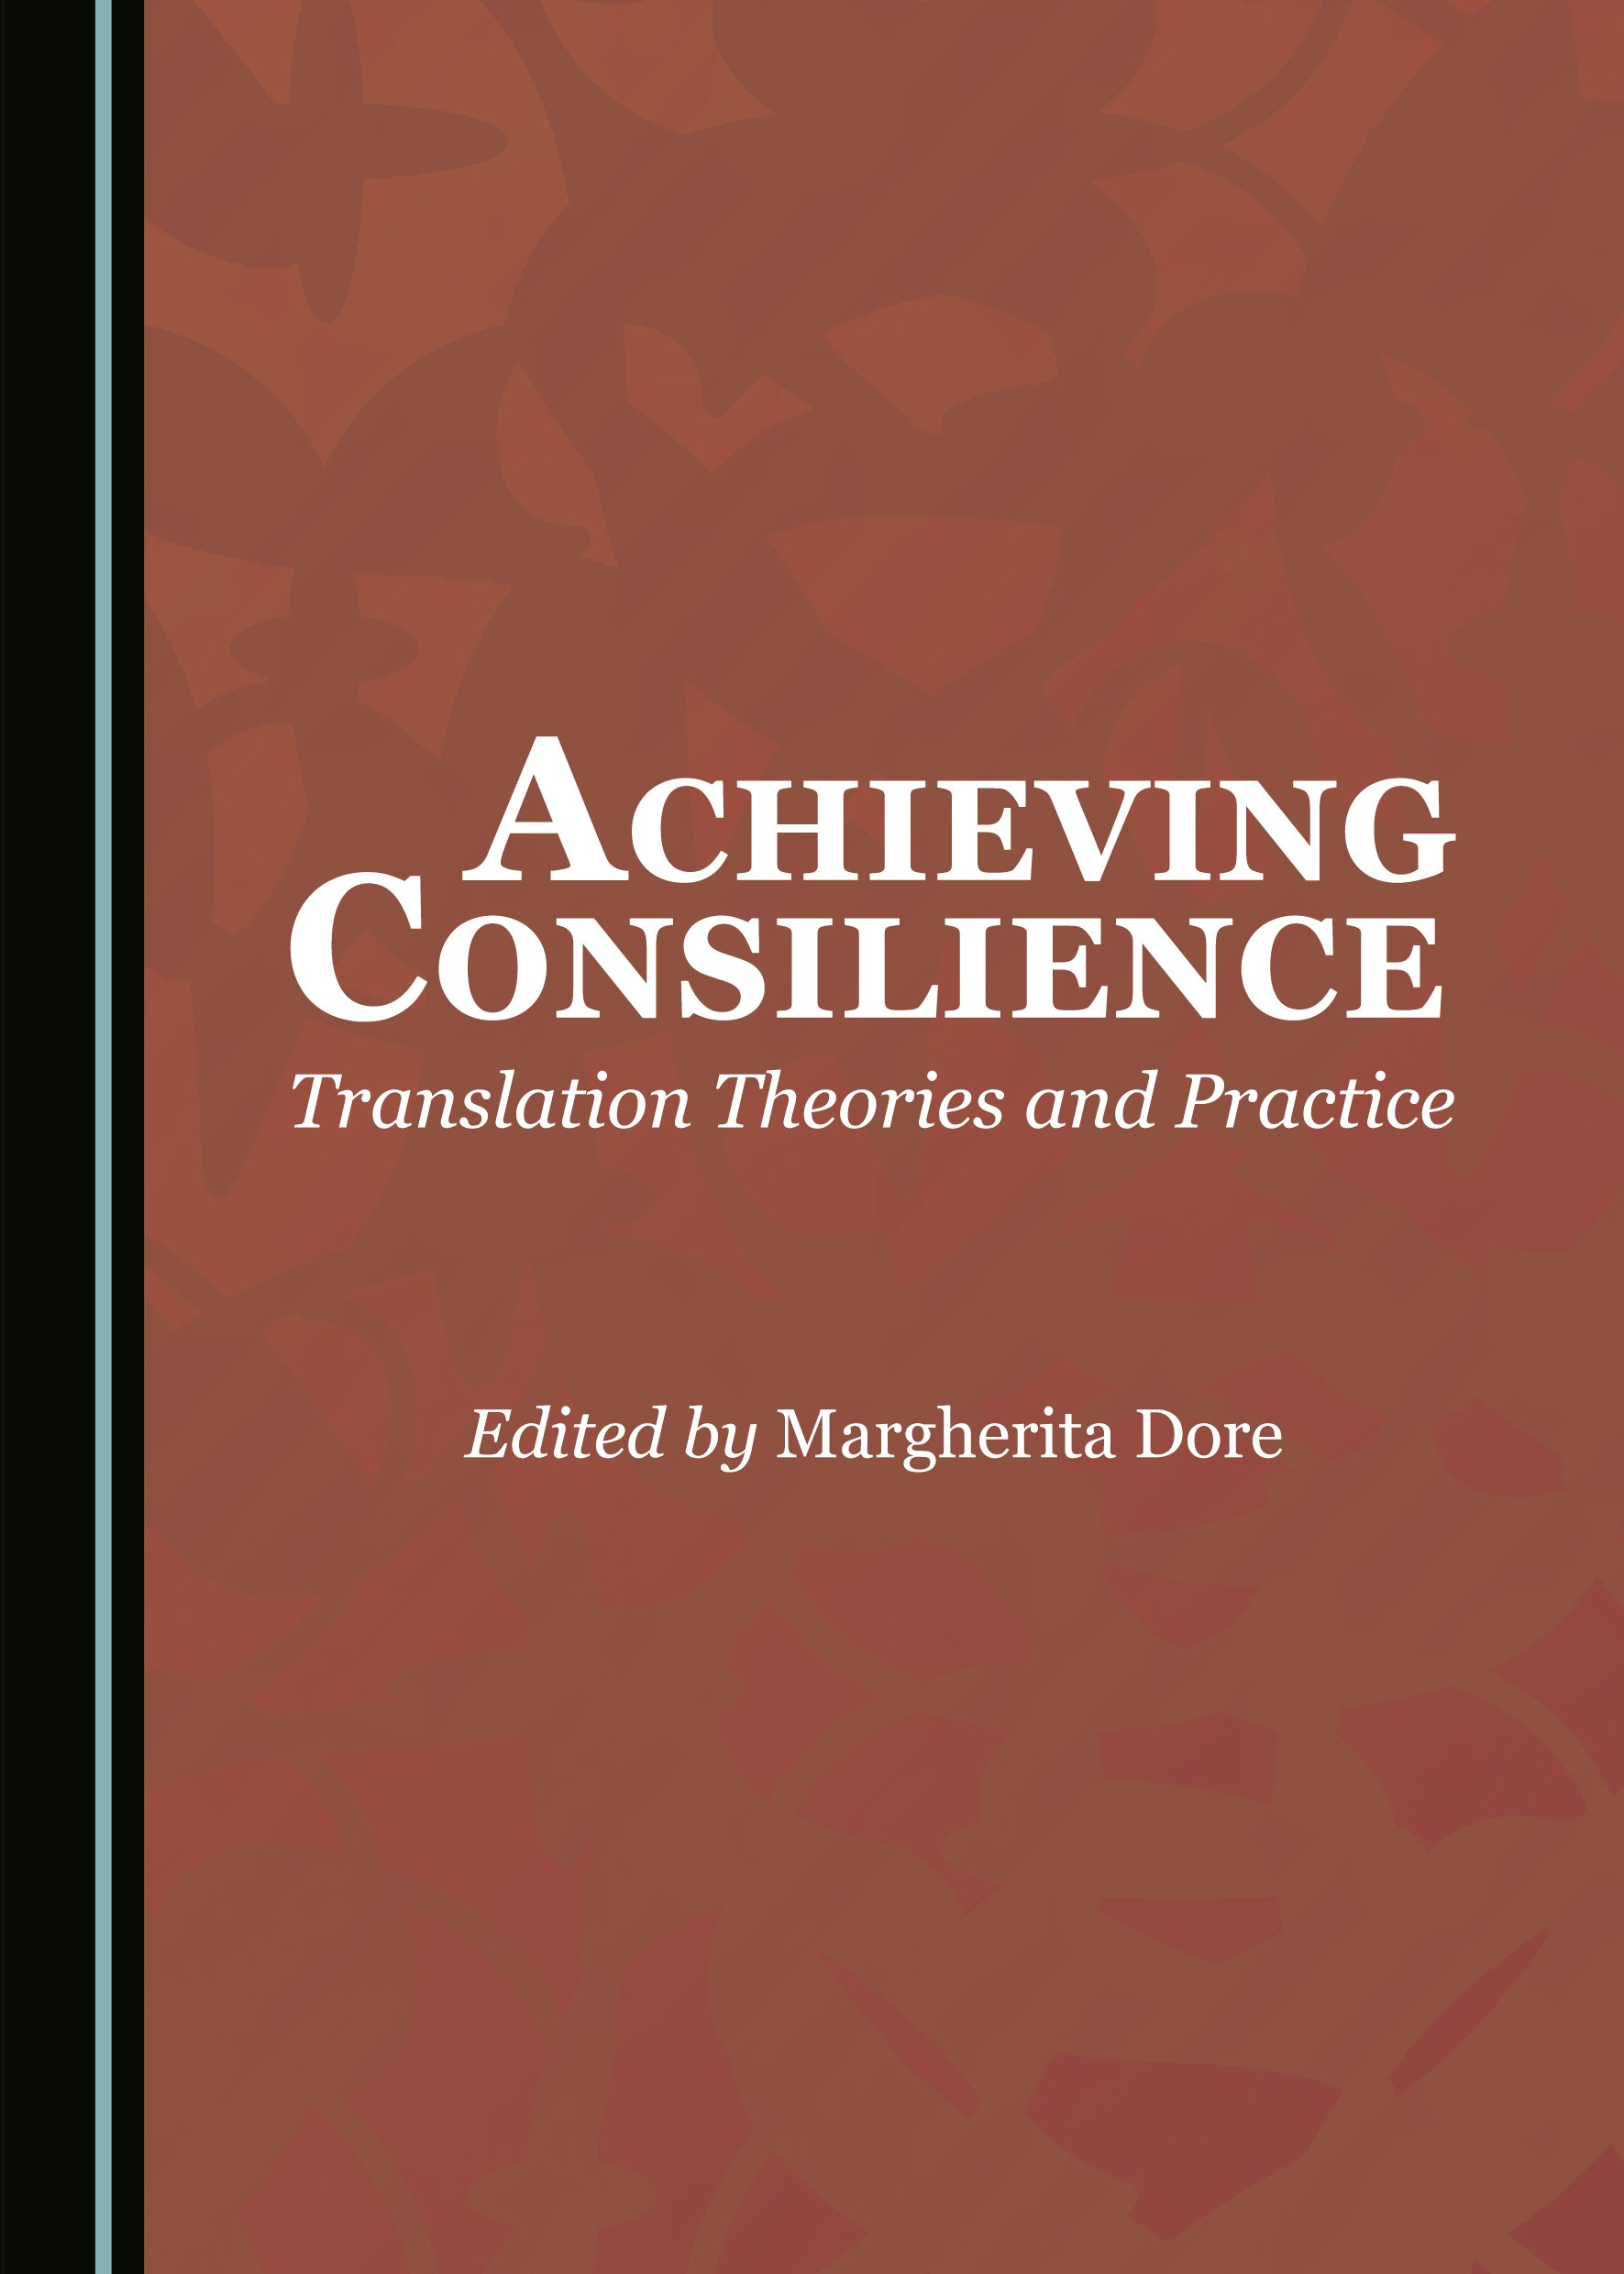 Achieving Consilience: Translation Theories and Practice